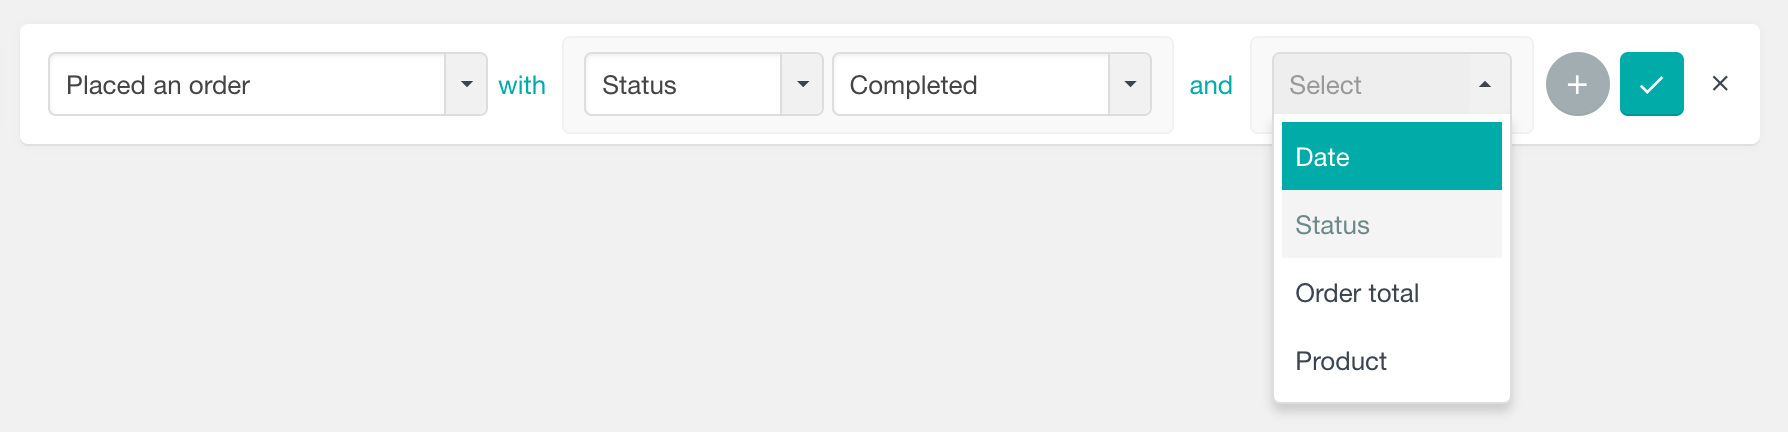 Using the WooCommerce placed an order filter